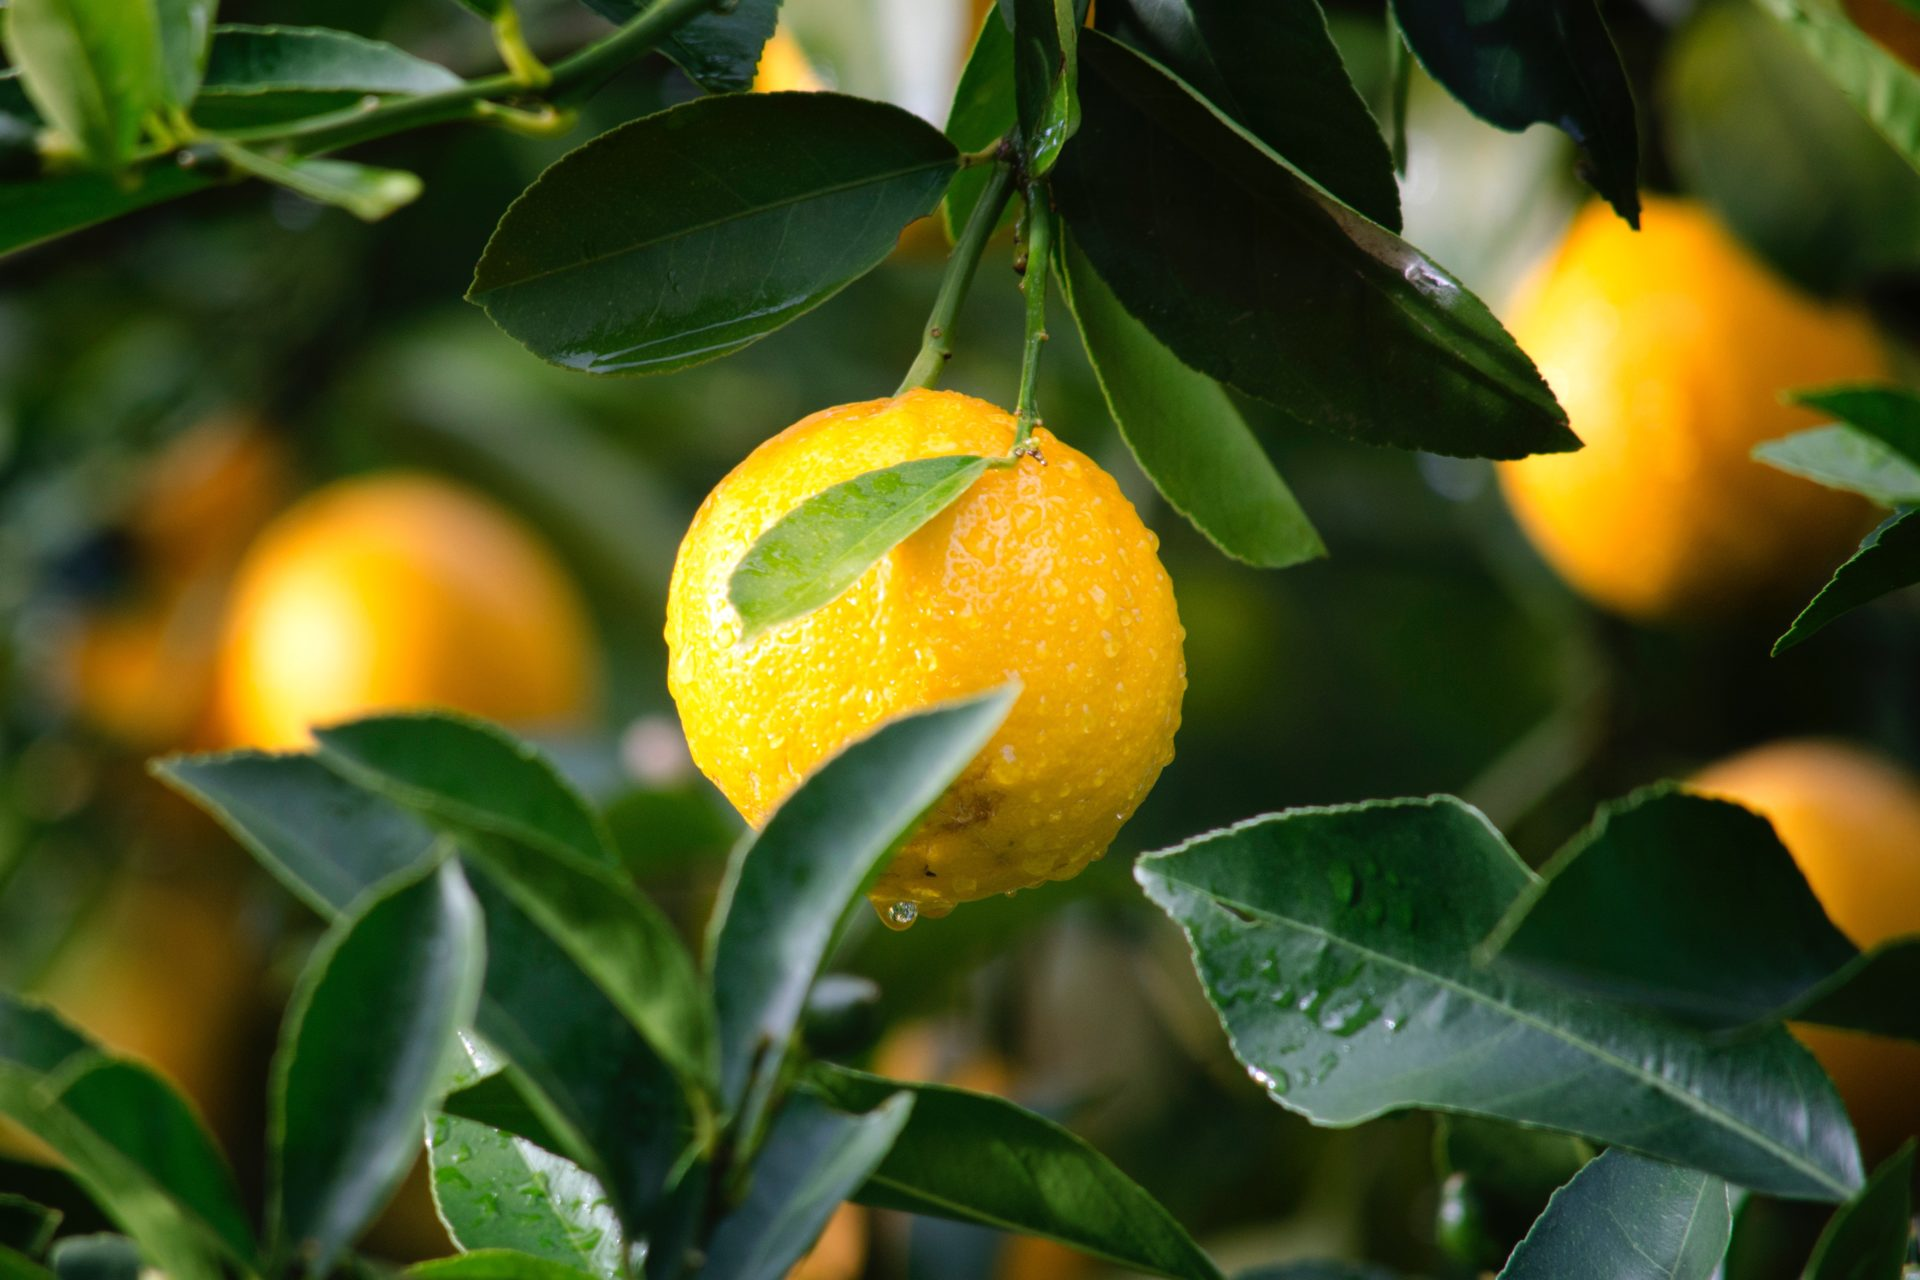 The new citrus levy will ensure both the long-term competitiveness of the industry and the sustainable growth of black-owned citrus enterprises. Photo: Supplied